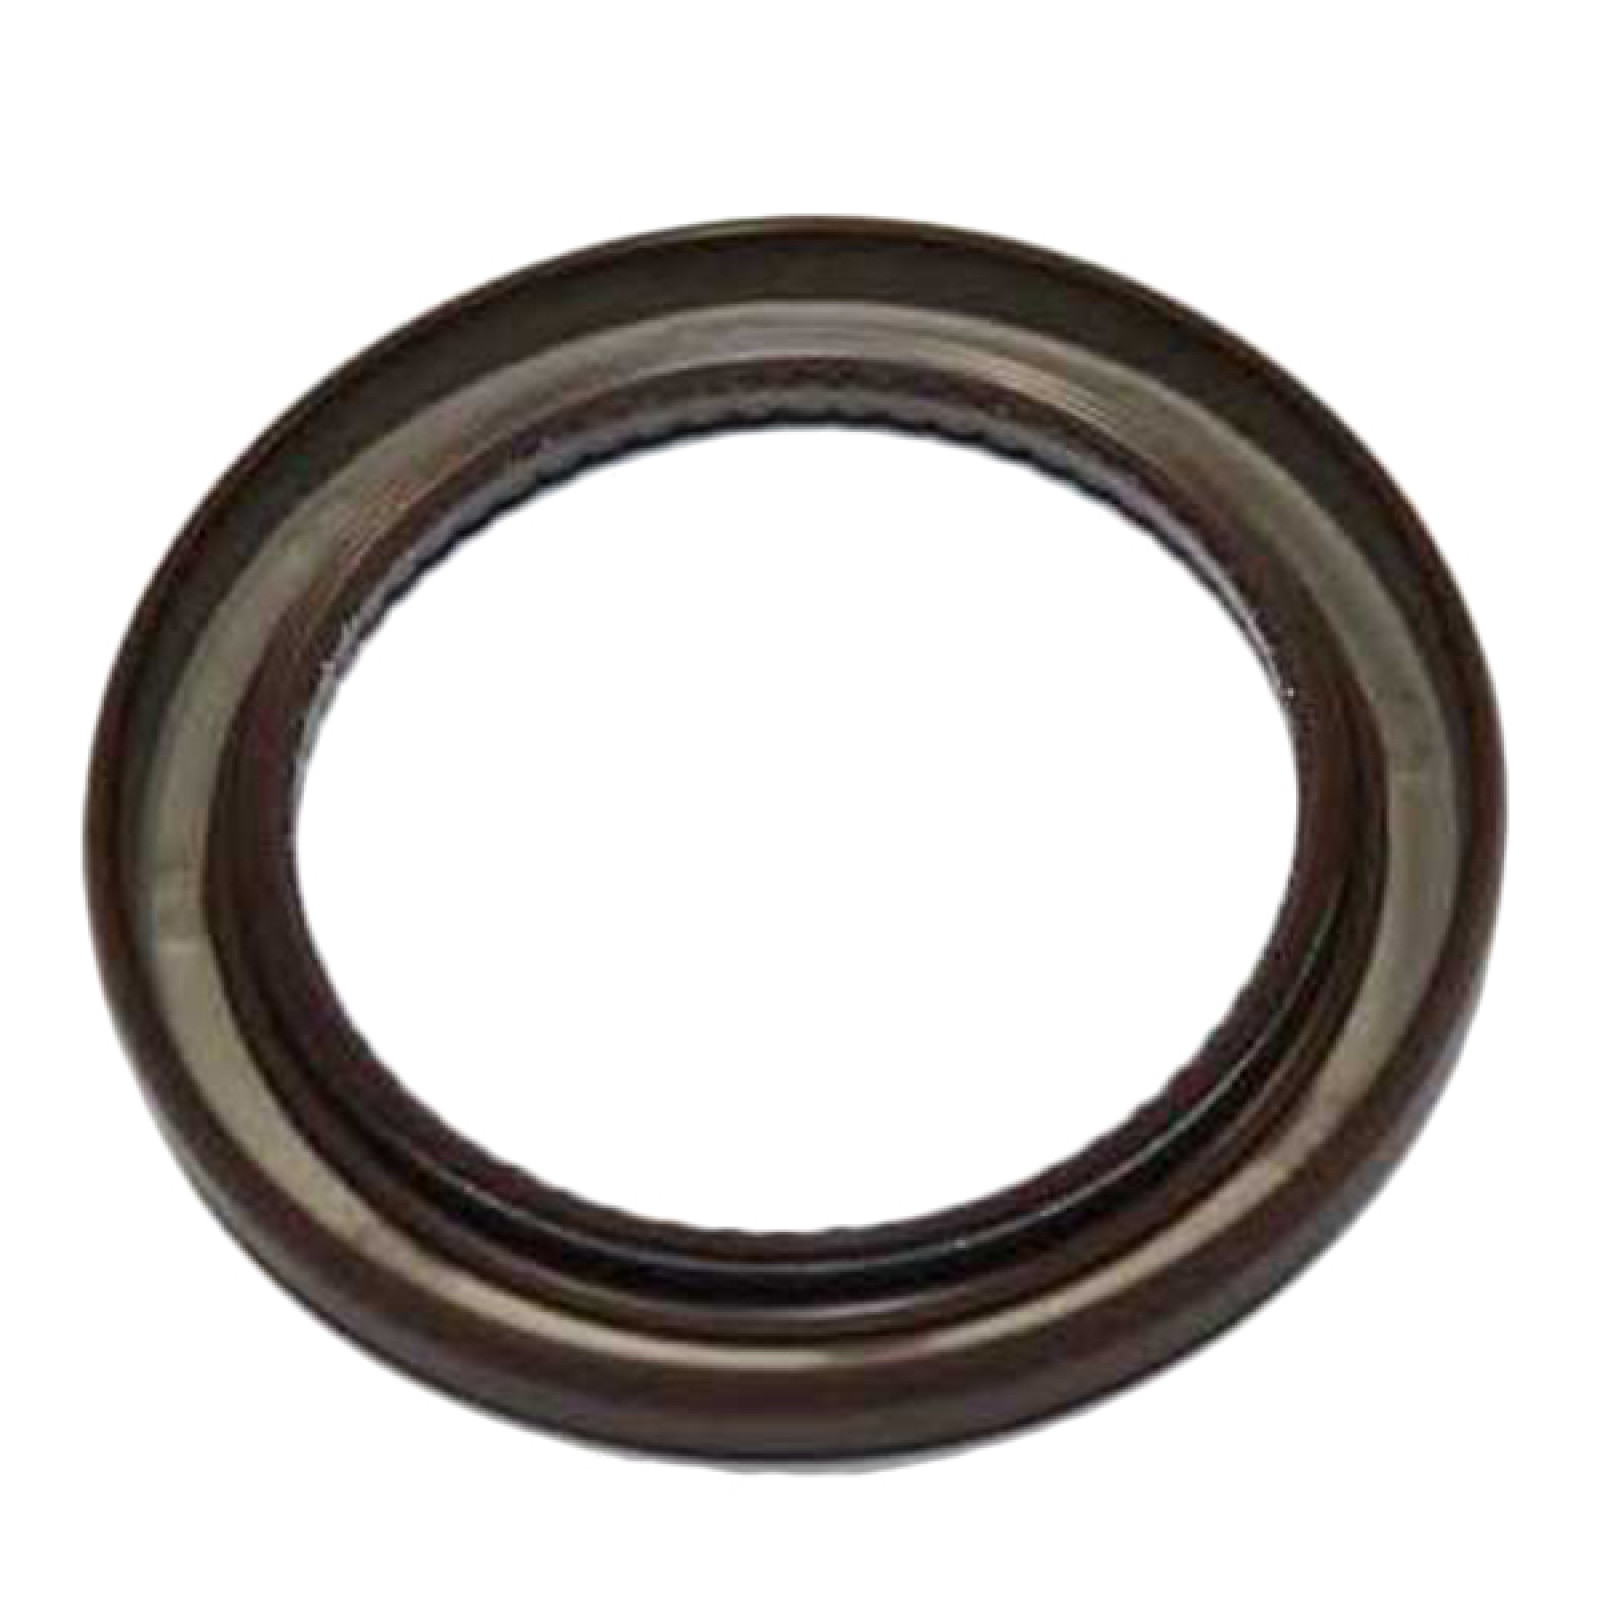 Mercedes benz steering box lower seal ring 0029977246 for Mercedes benz ring